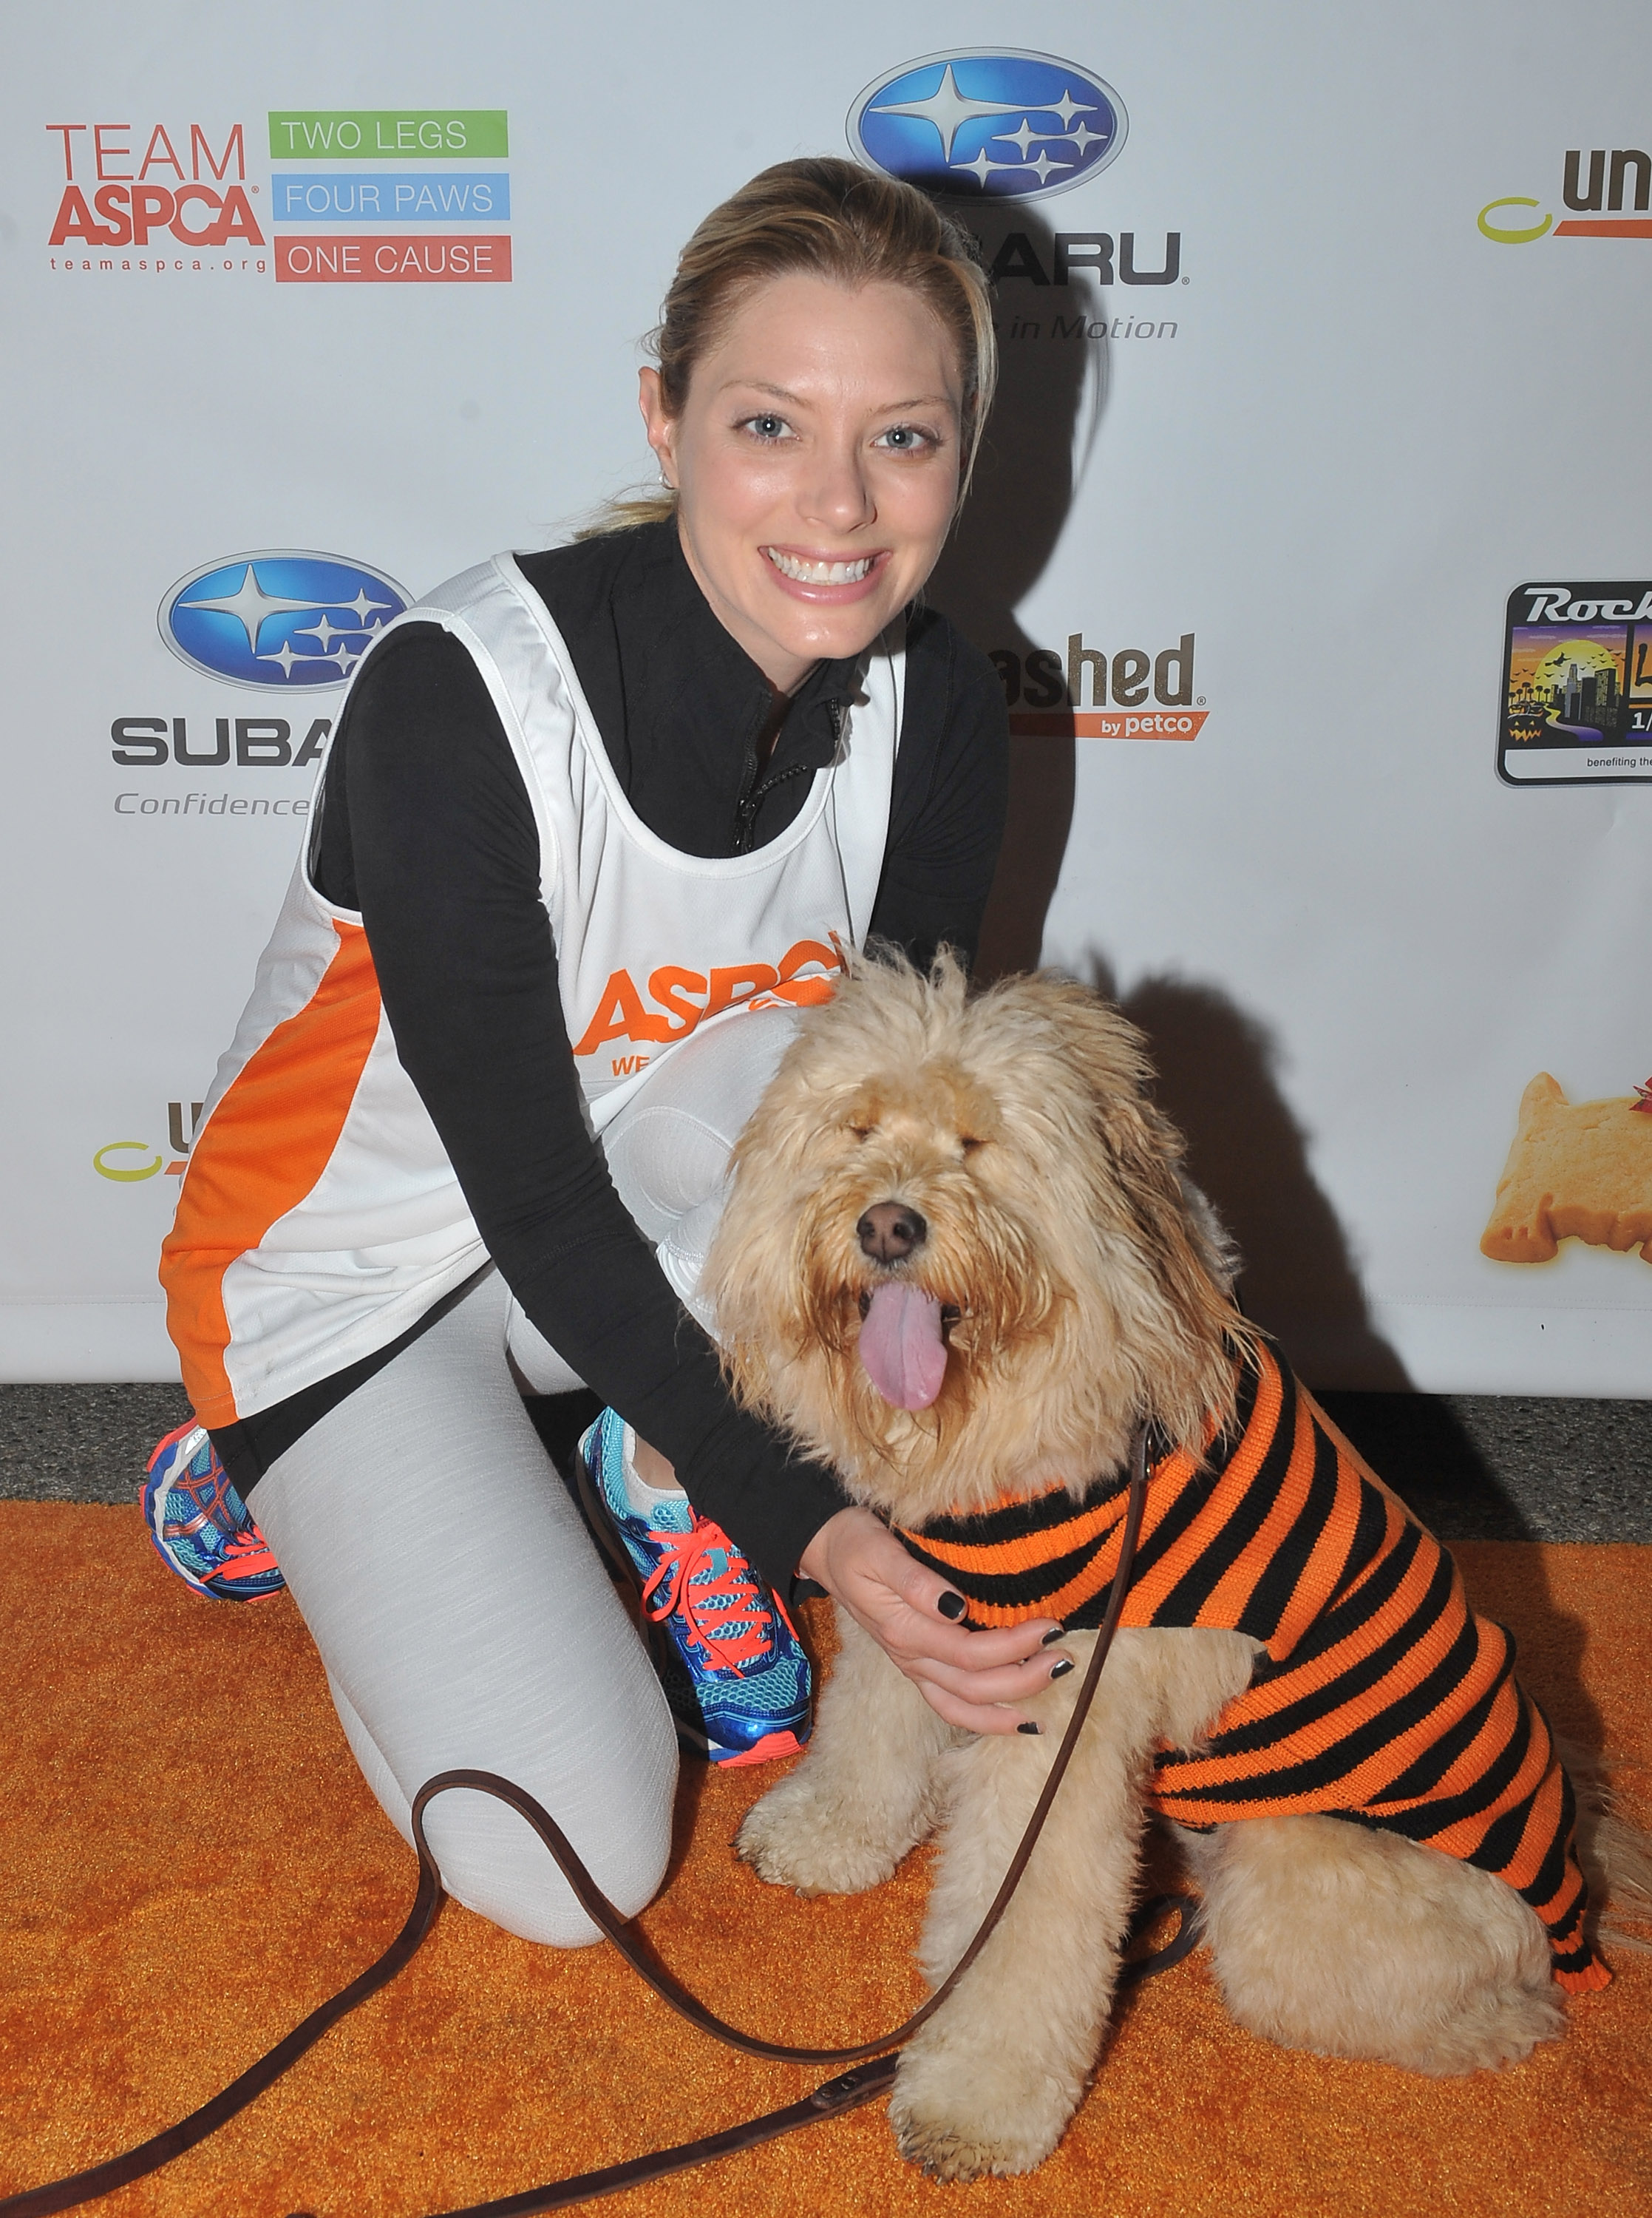 Actress April Bowlby and her dog Clementine attend the Rock 'n' Roll Los Angeles Halloween Half-Marathon benefitting The ASPCA at L.A. LIVE on October 27, 2013, in Los Angeles, California. (Photo by Angela Weiss/Getty Images for ASPCA)